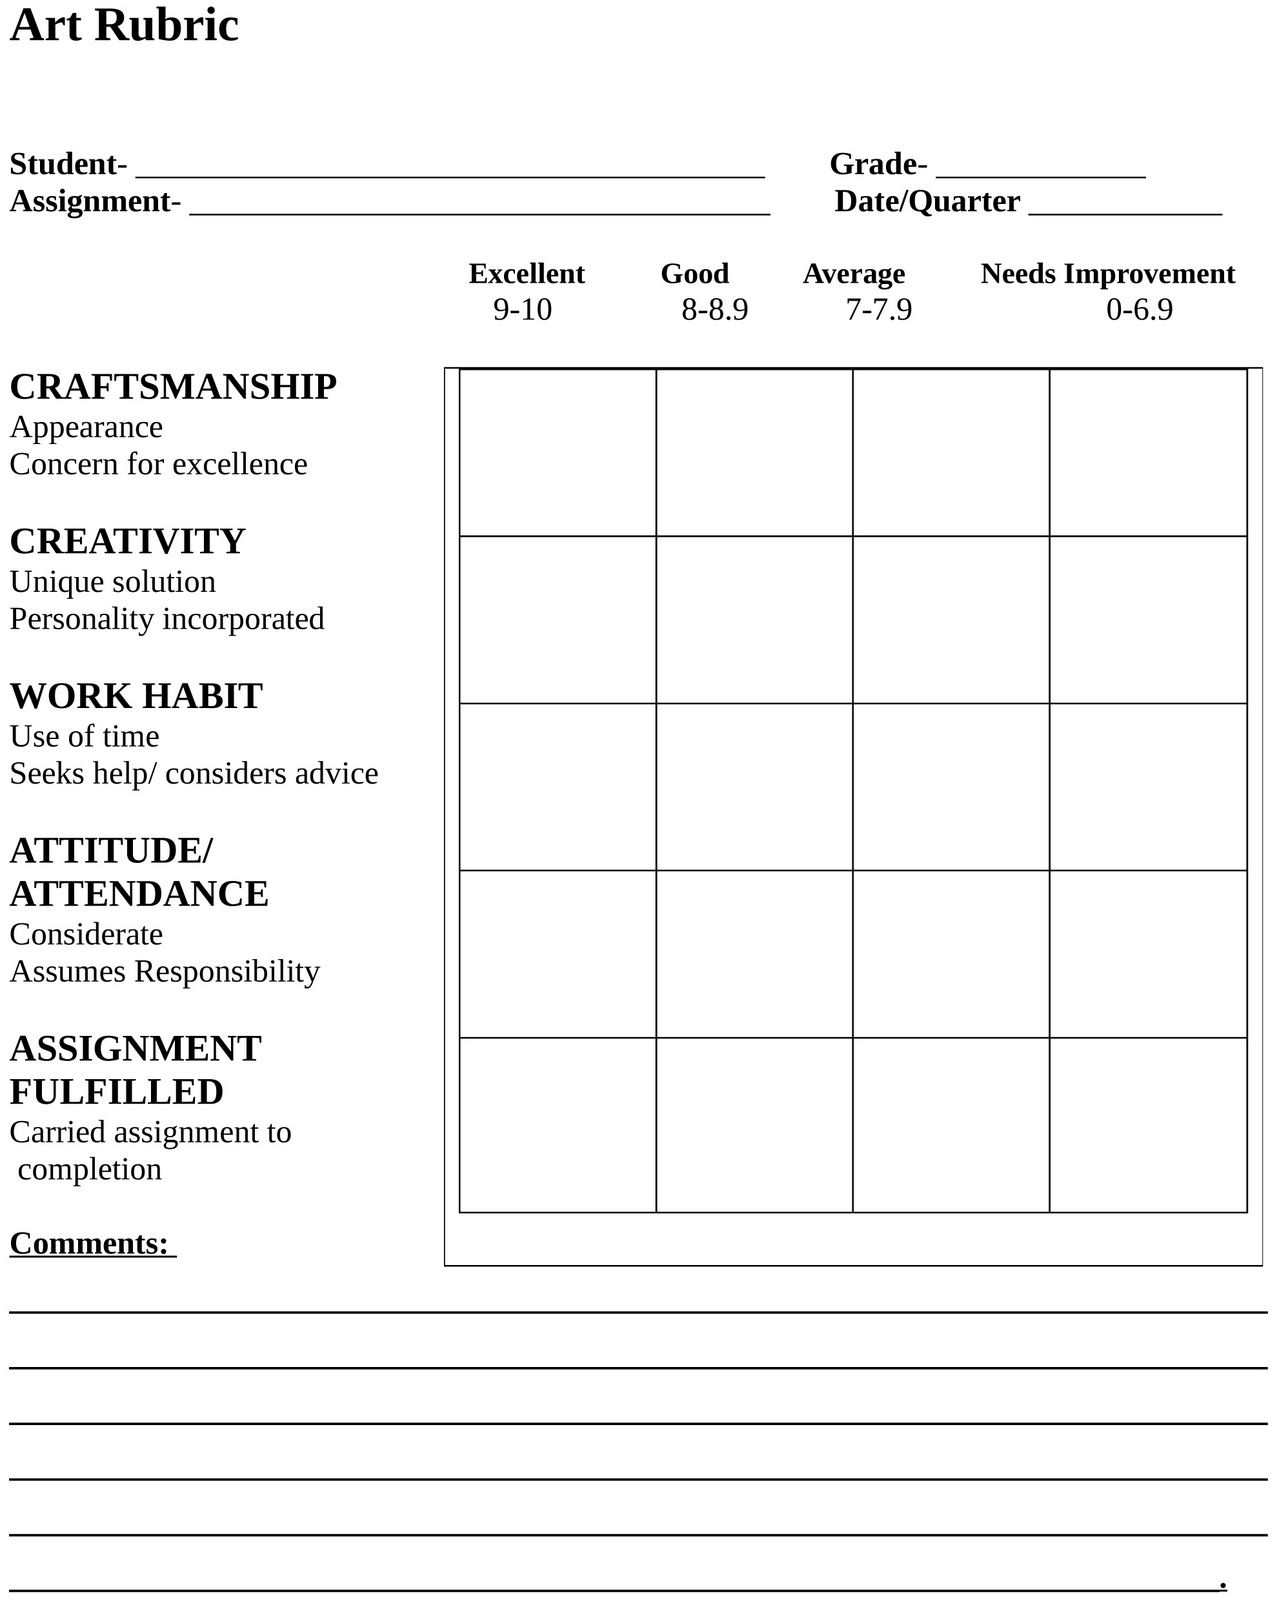 art rubric im thinking of comparing this to one that asks students to reflect on their. Black Bedroom Furniture Sets. Home Design Ideas